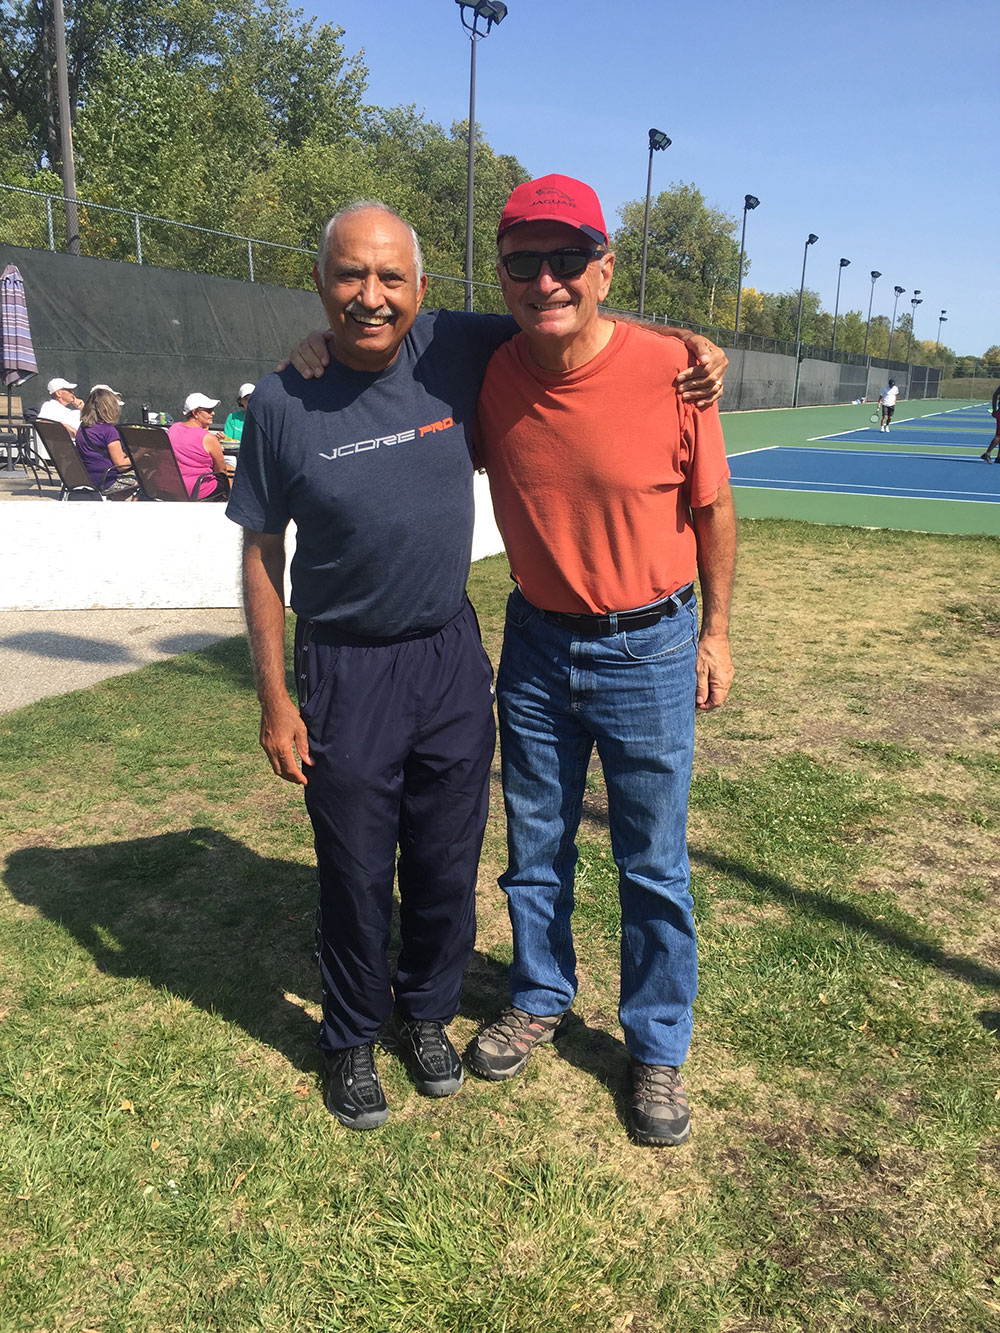 Archie's Chawla and Tom Hiebert - Men's 65+ doubles winners